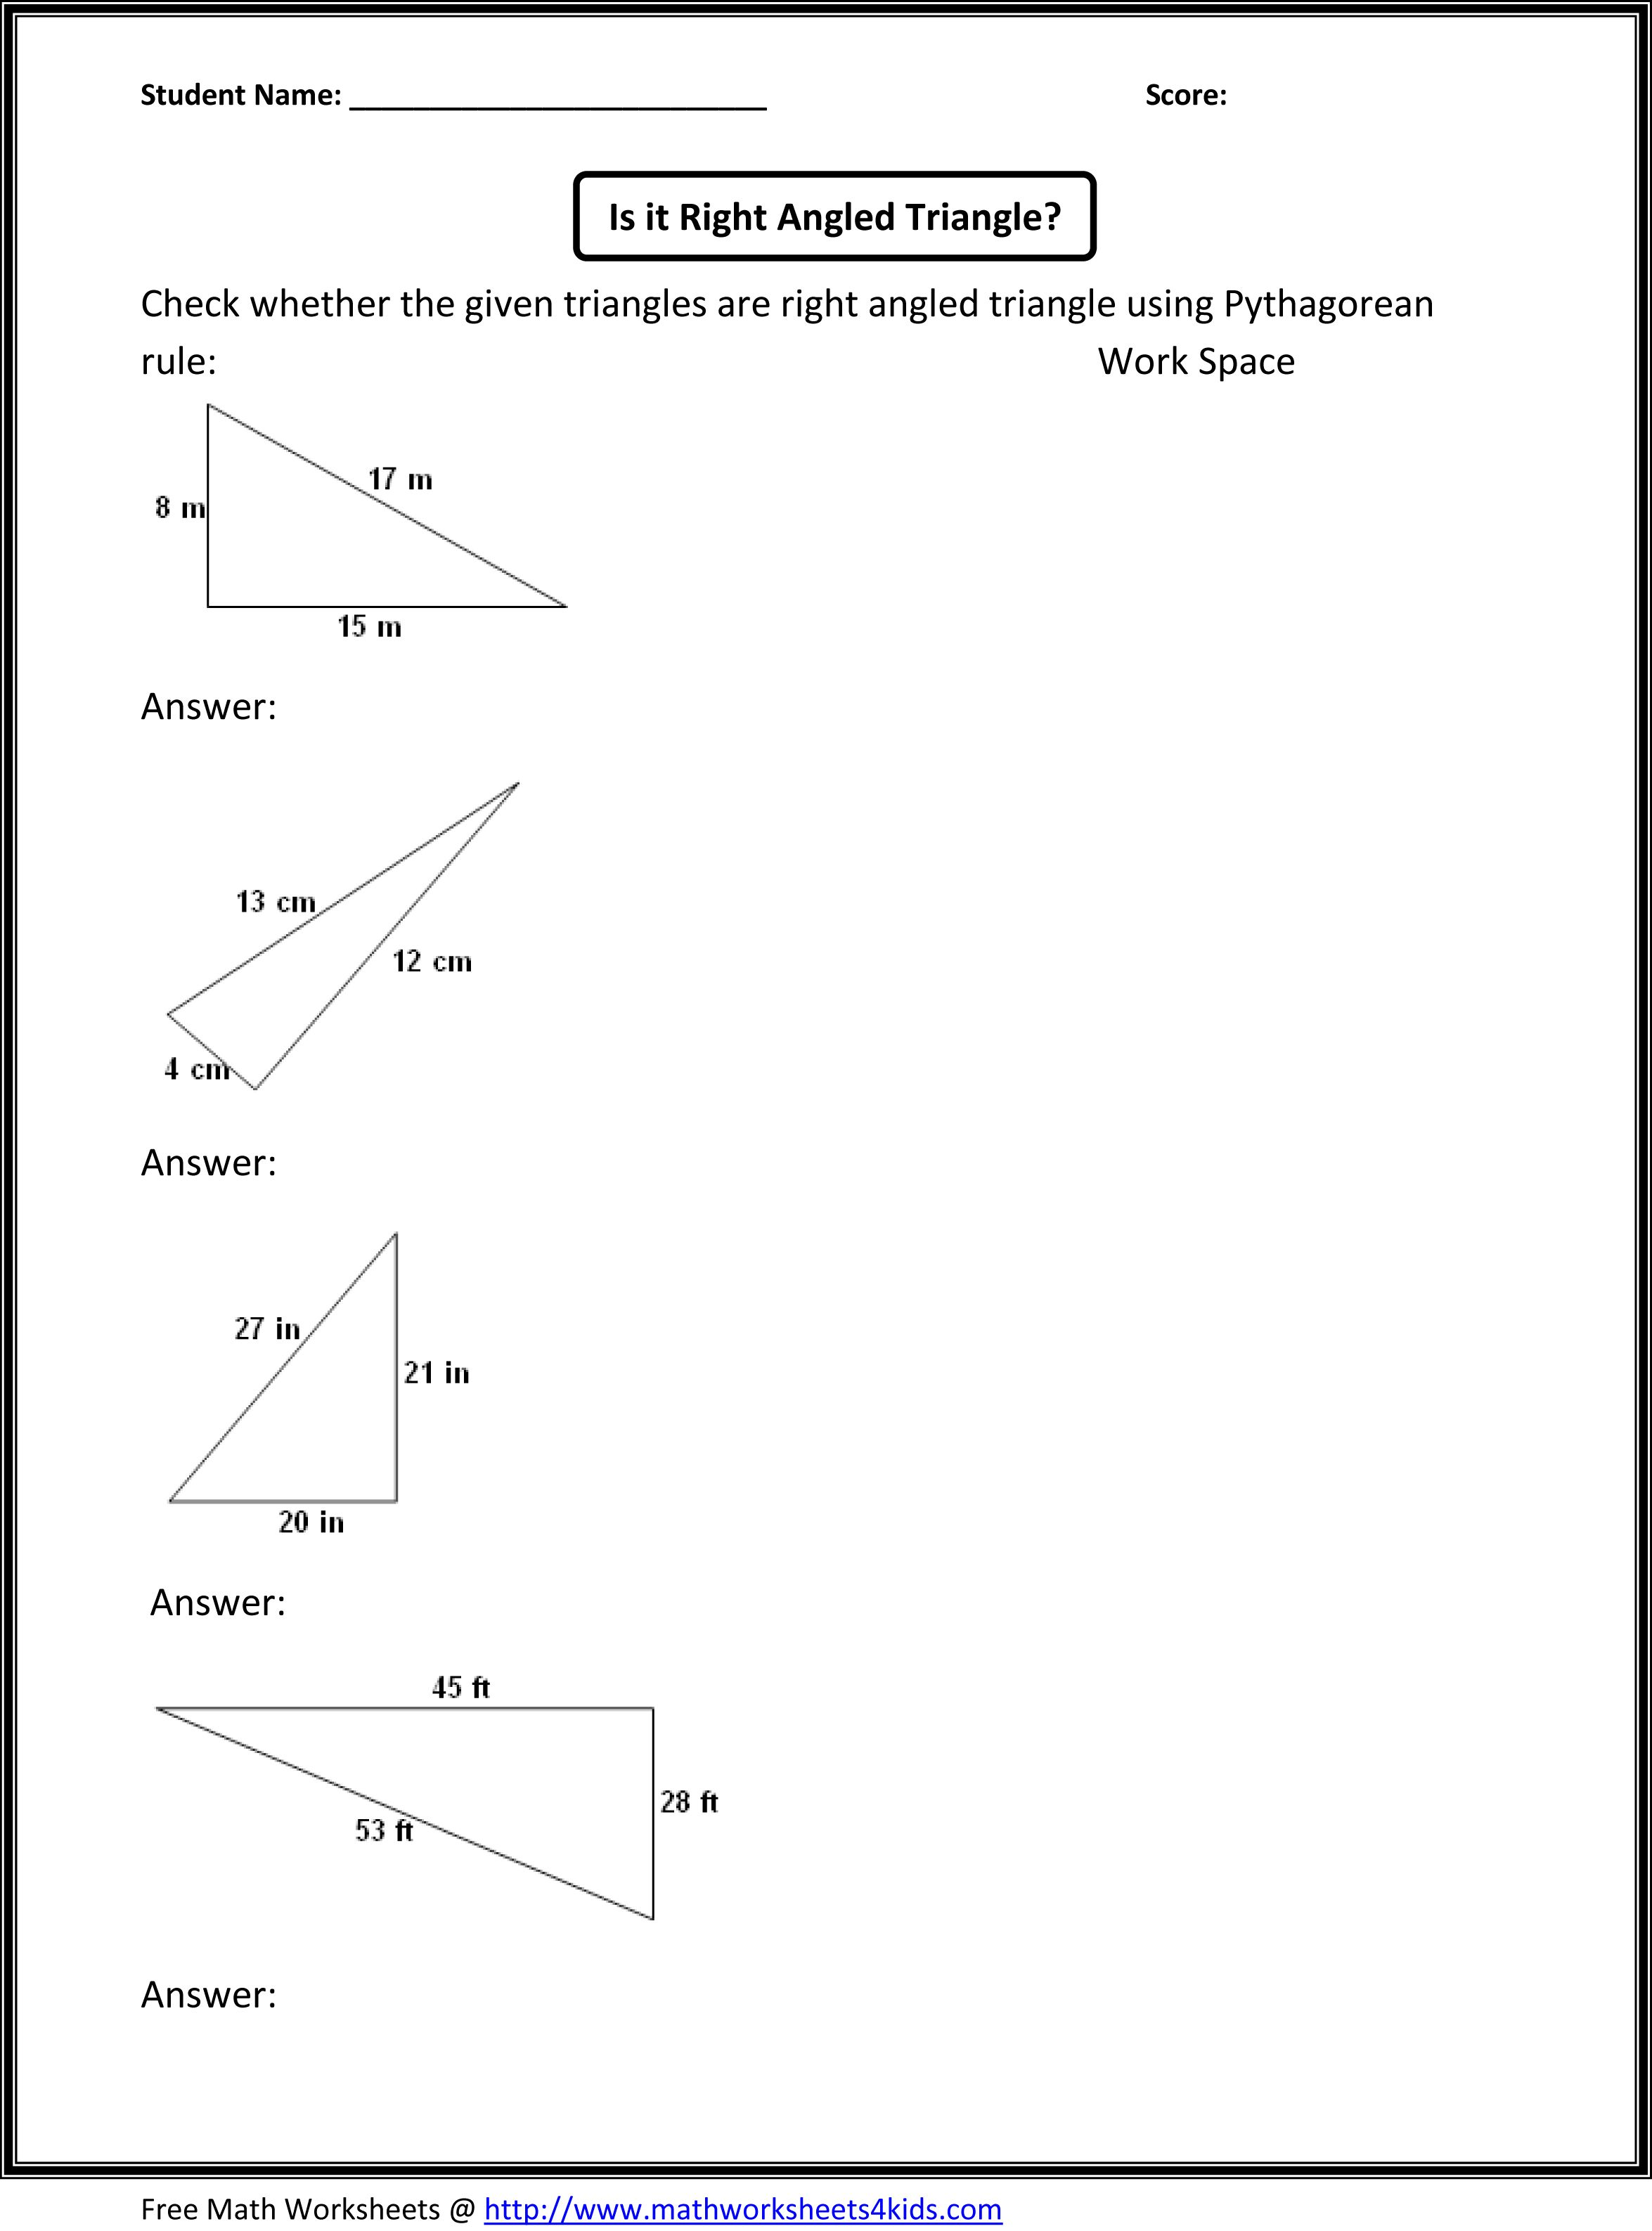 Eighth Grade Math Worksheets 8th Grade Math Worksheets With Answers likewise exponent math worksheets 8th grade in addition  in addition Scientific Notation Worksheet 8th Grade Math Grade Math Worksheets additionally 8th Grade Math Review Worksheet 8th Grade Math Worksheets Alge further Math Worksheets 8th Grade Pre Alge Grade Alge Worksheets Grade likewise Grade Science Worksheets Awesome Forces Motion Worksheet Printable besides Cubed Roots Worksheet Math 8th Grade Math Cube Root Worksheets moreover Free Math Worksheets Pre Alge Math Worksheets Free Math as well 10th Grade Math Worksheets Grade Math Worksheets 8th Grade Pics Free moreover  likewise slope intercept form worksheets 8th grade – homeoffice also Math Worksheets Grades 1 6   Worksheet Domains And Ranges Of additionally  further Free Grade Math Worksheets Printable With Answers Download Them And also Great site with lots of eighth grade topics   Worksheets   8th grade. on math worksheets for 8th grade